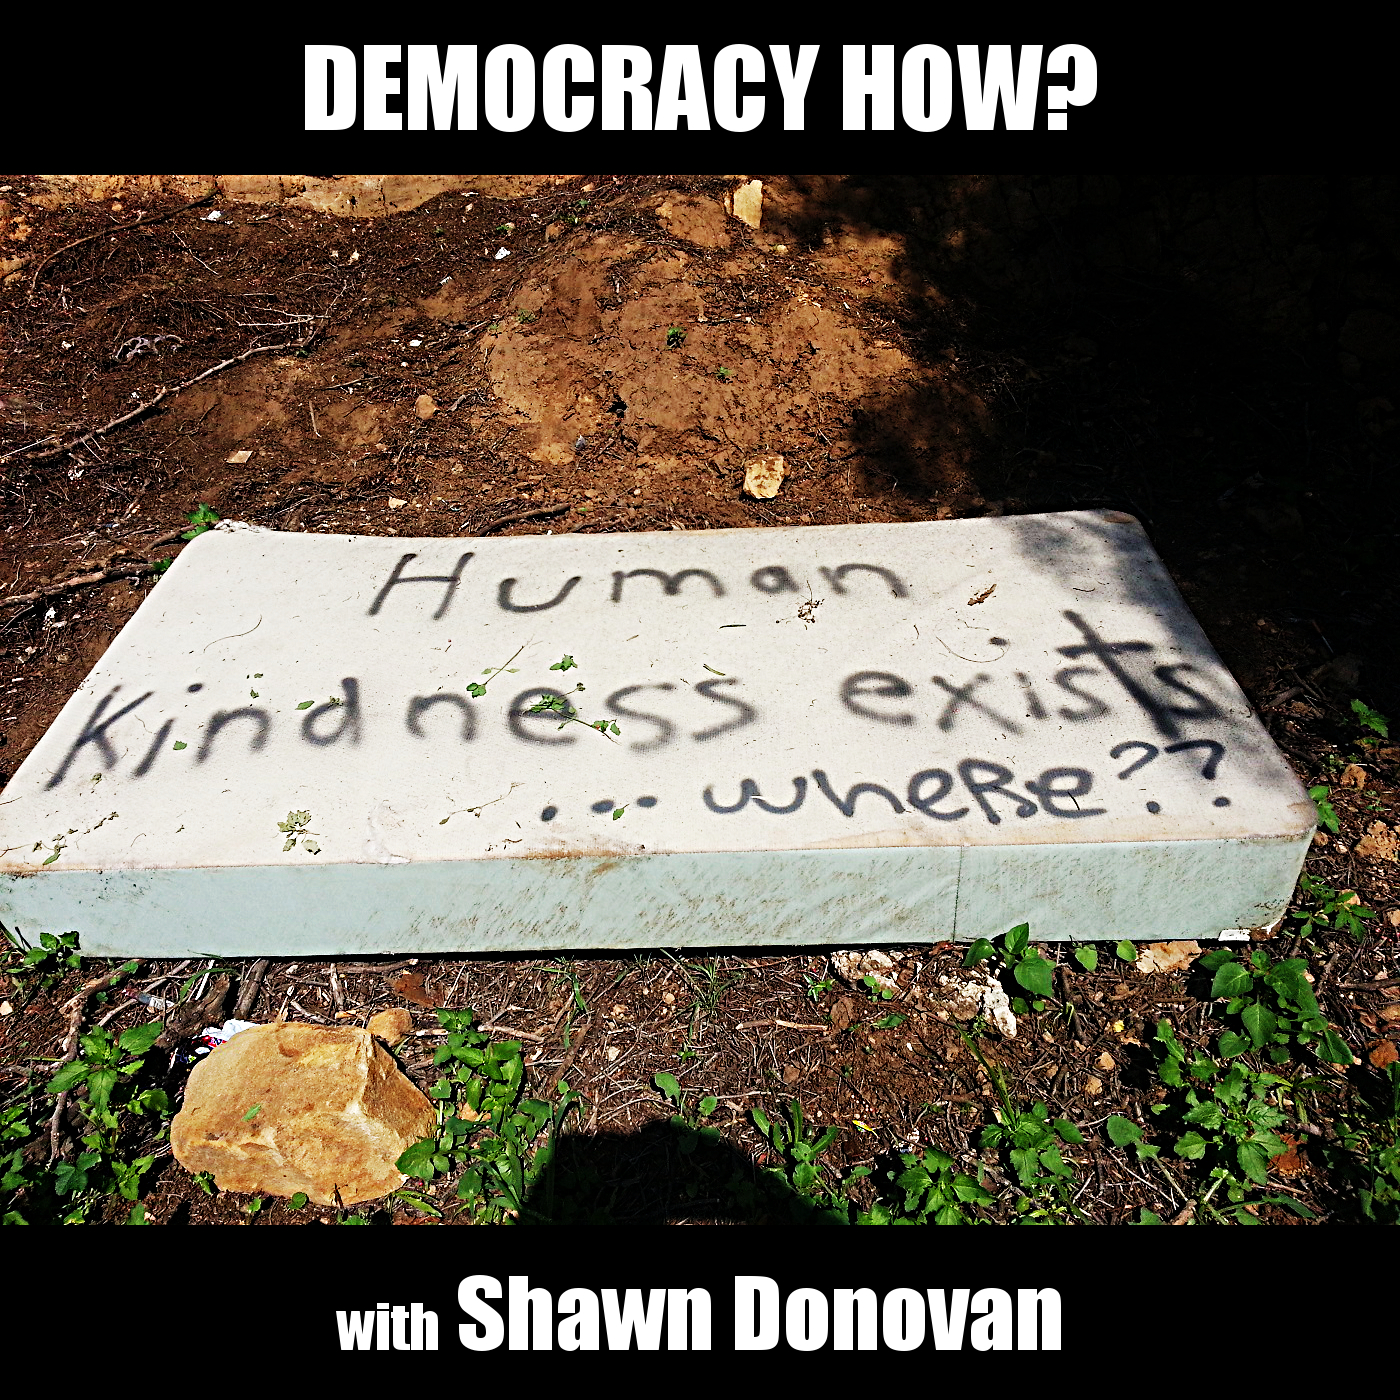 Democracy How?